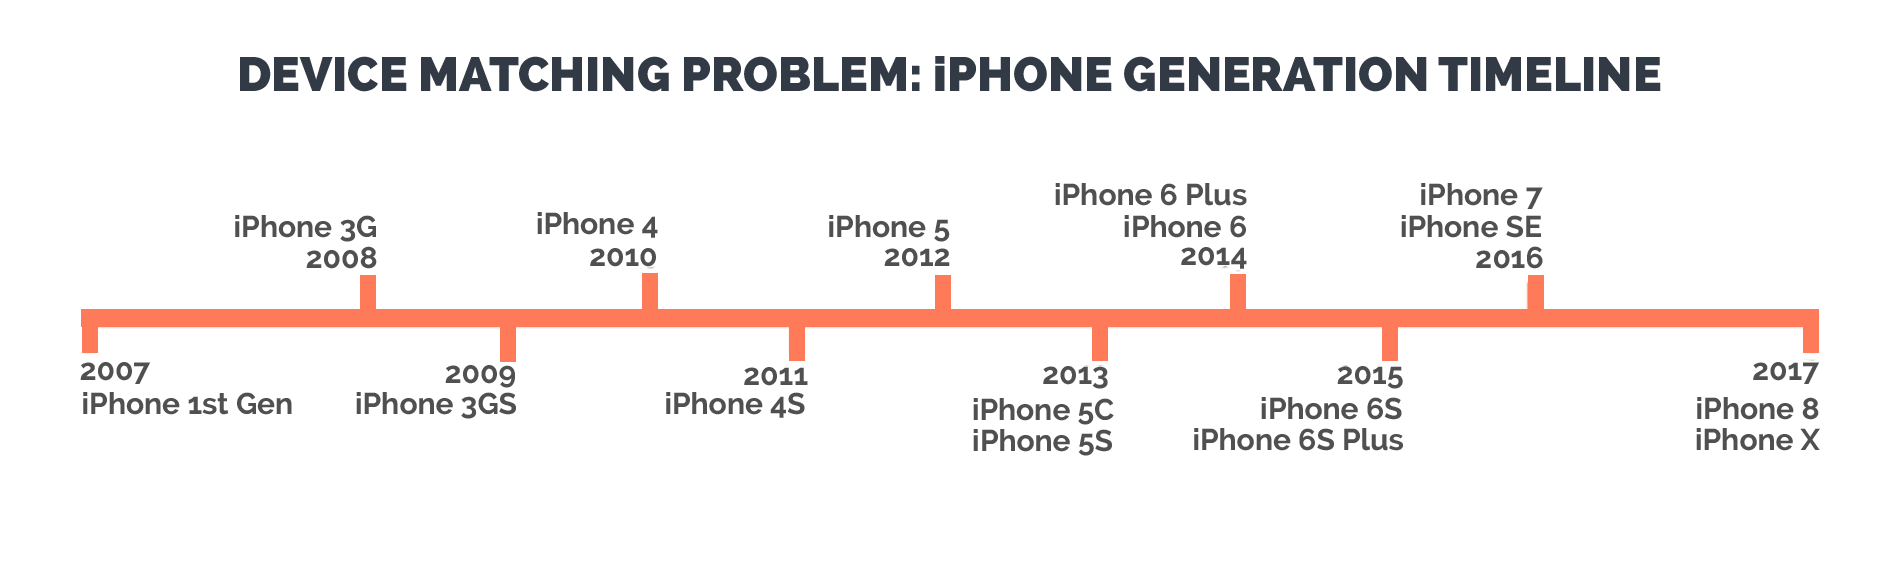 device-matching-wifi-problem-iPhone-generation-timeline-infographic.png